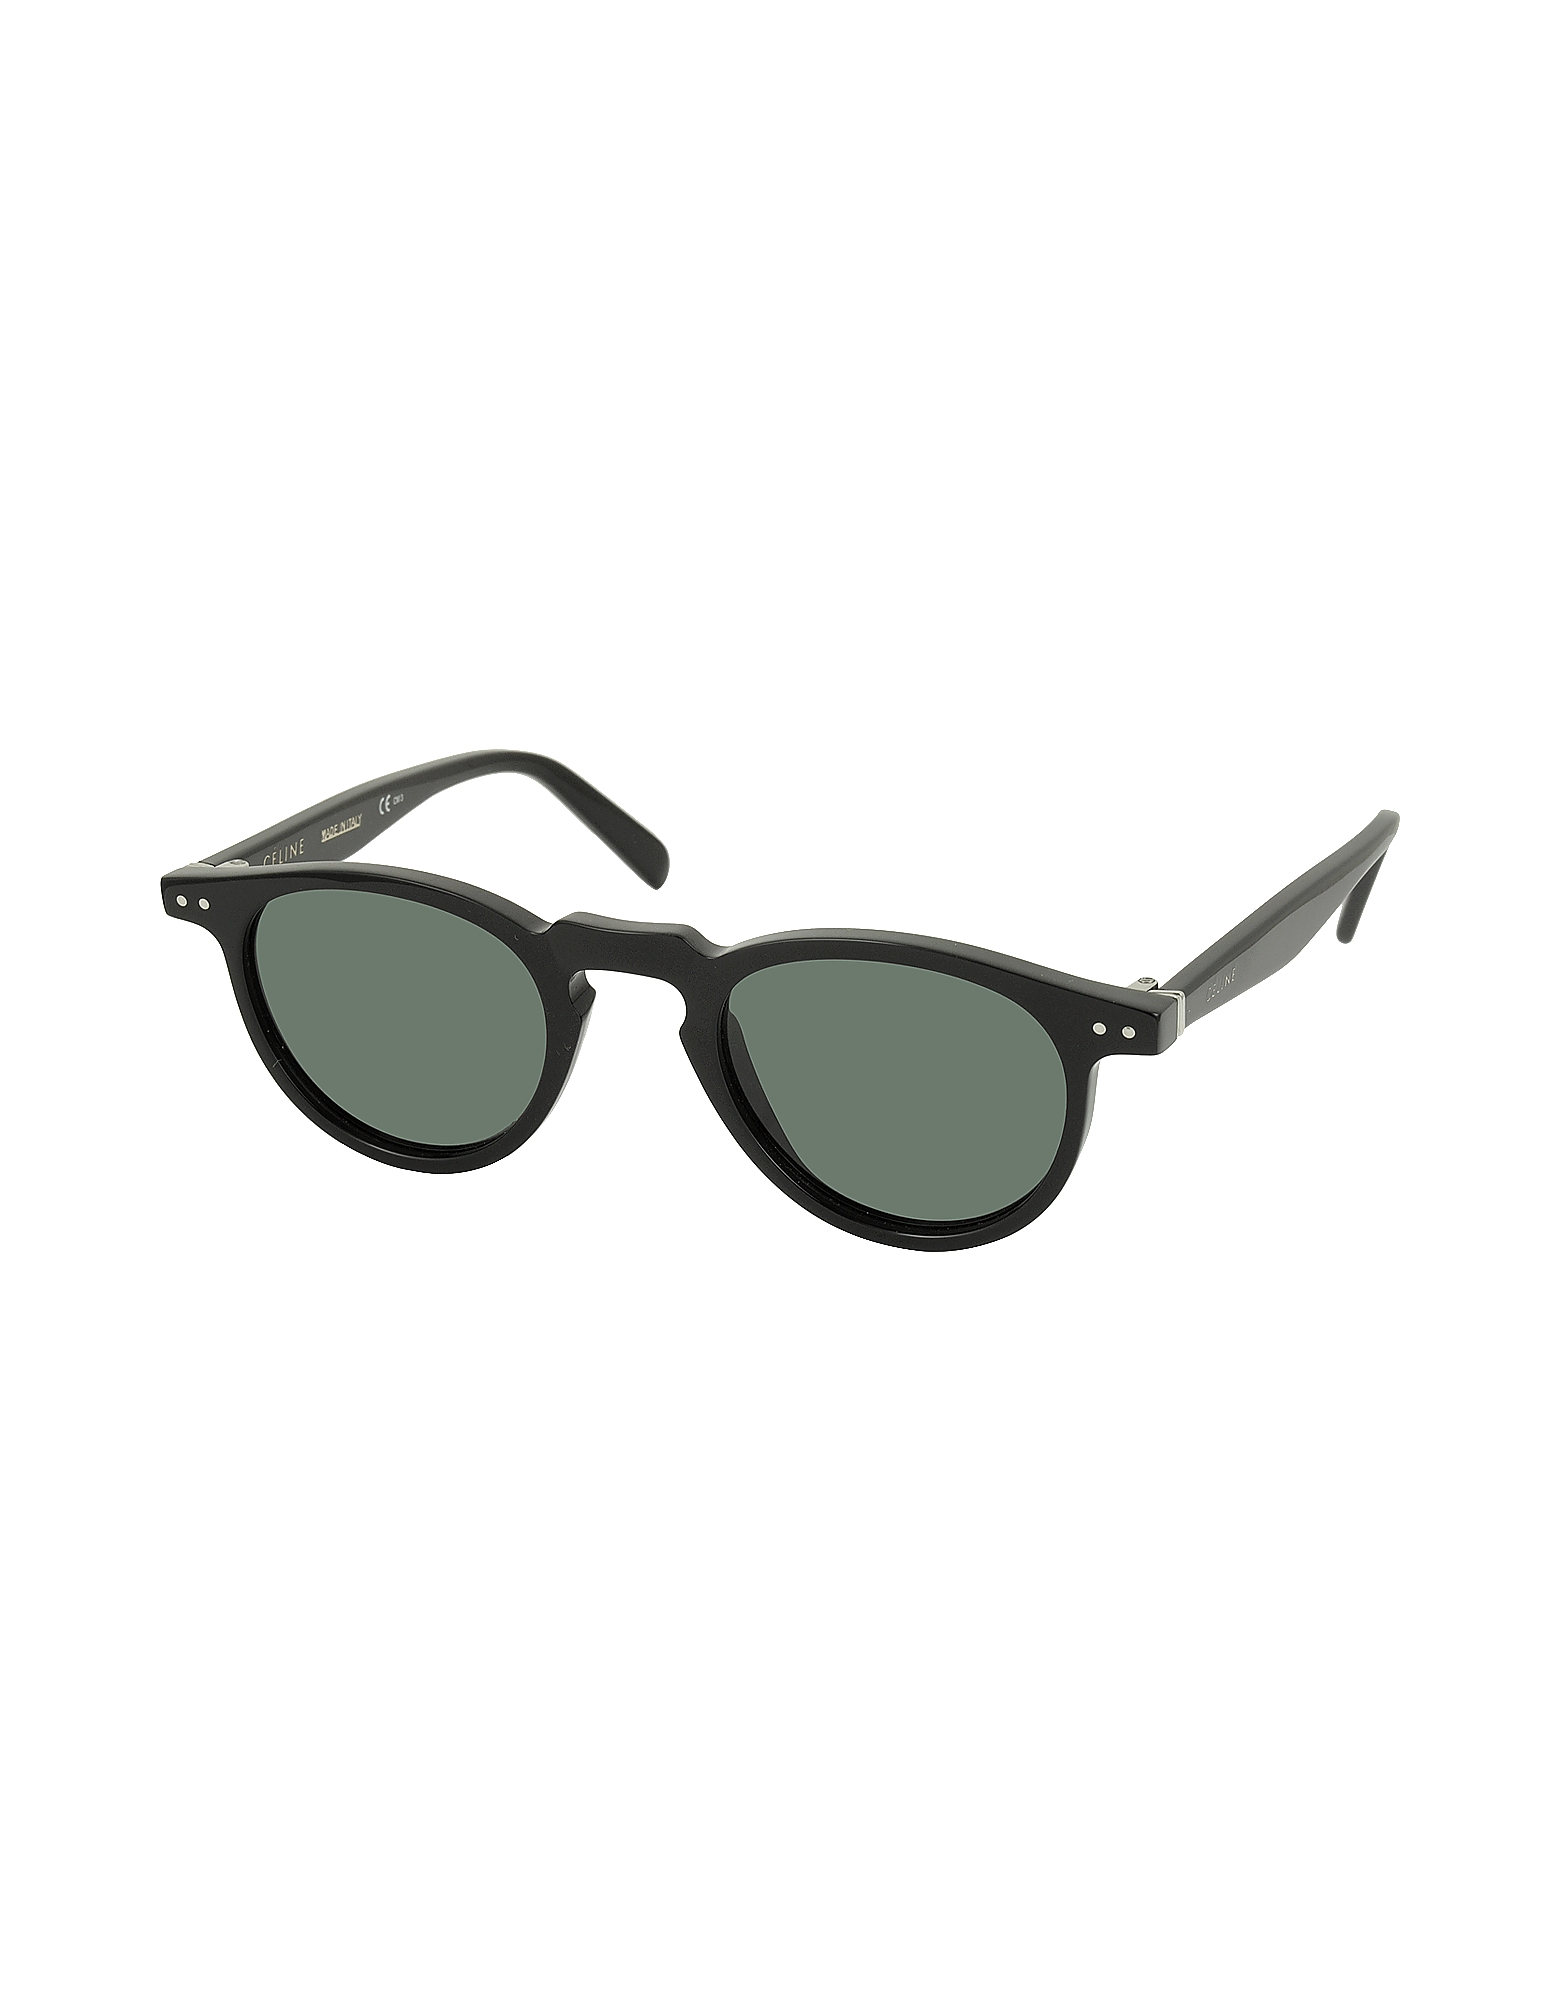 CHARLINE CL 41401/S Acetate Round Women's Sunglasses от Forzieri.com INT